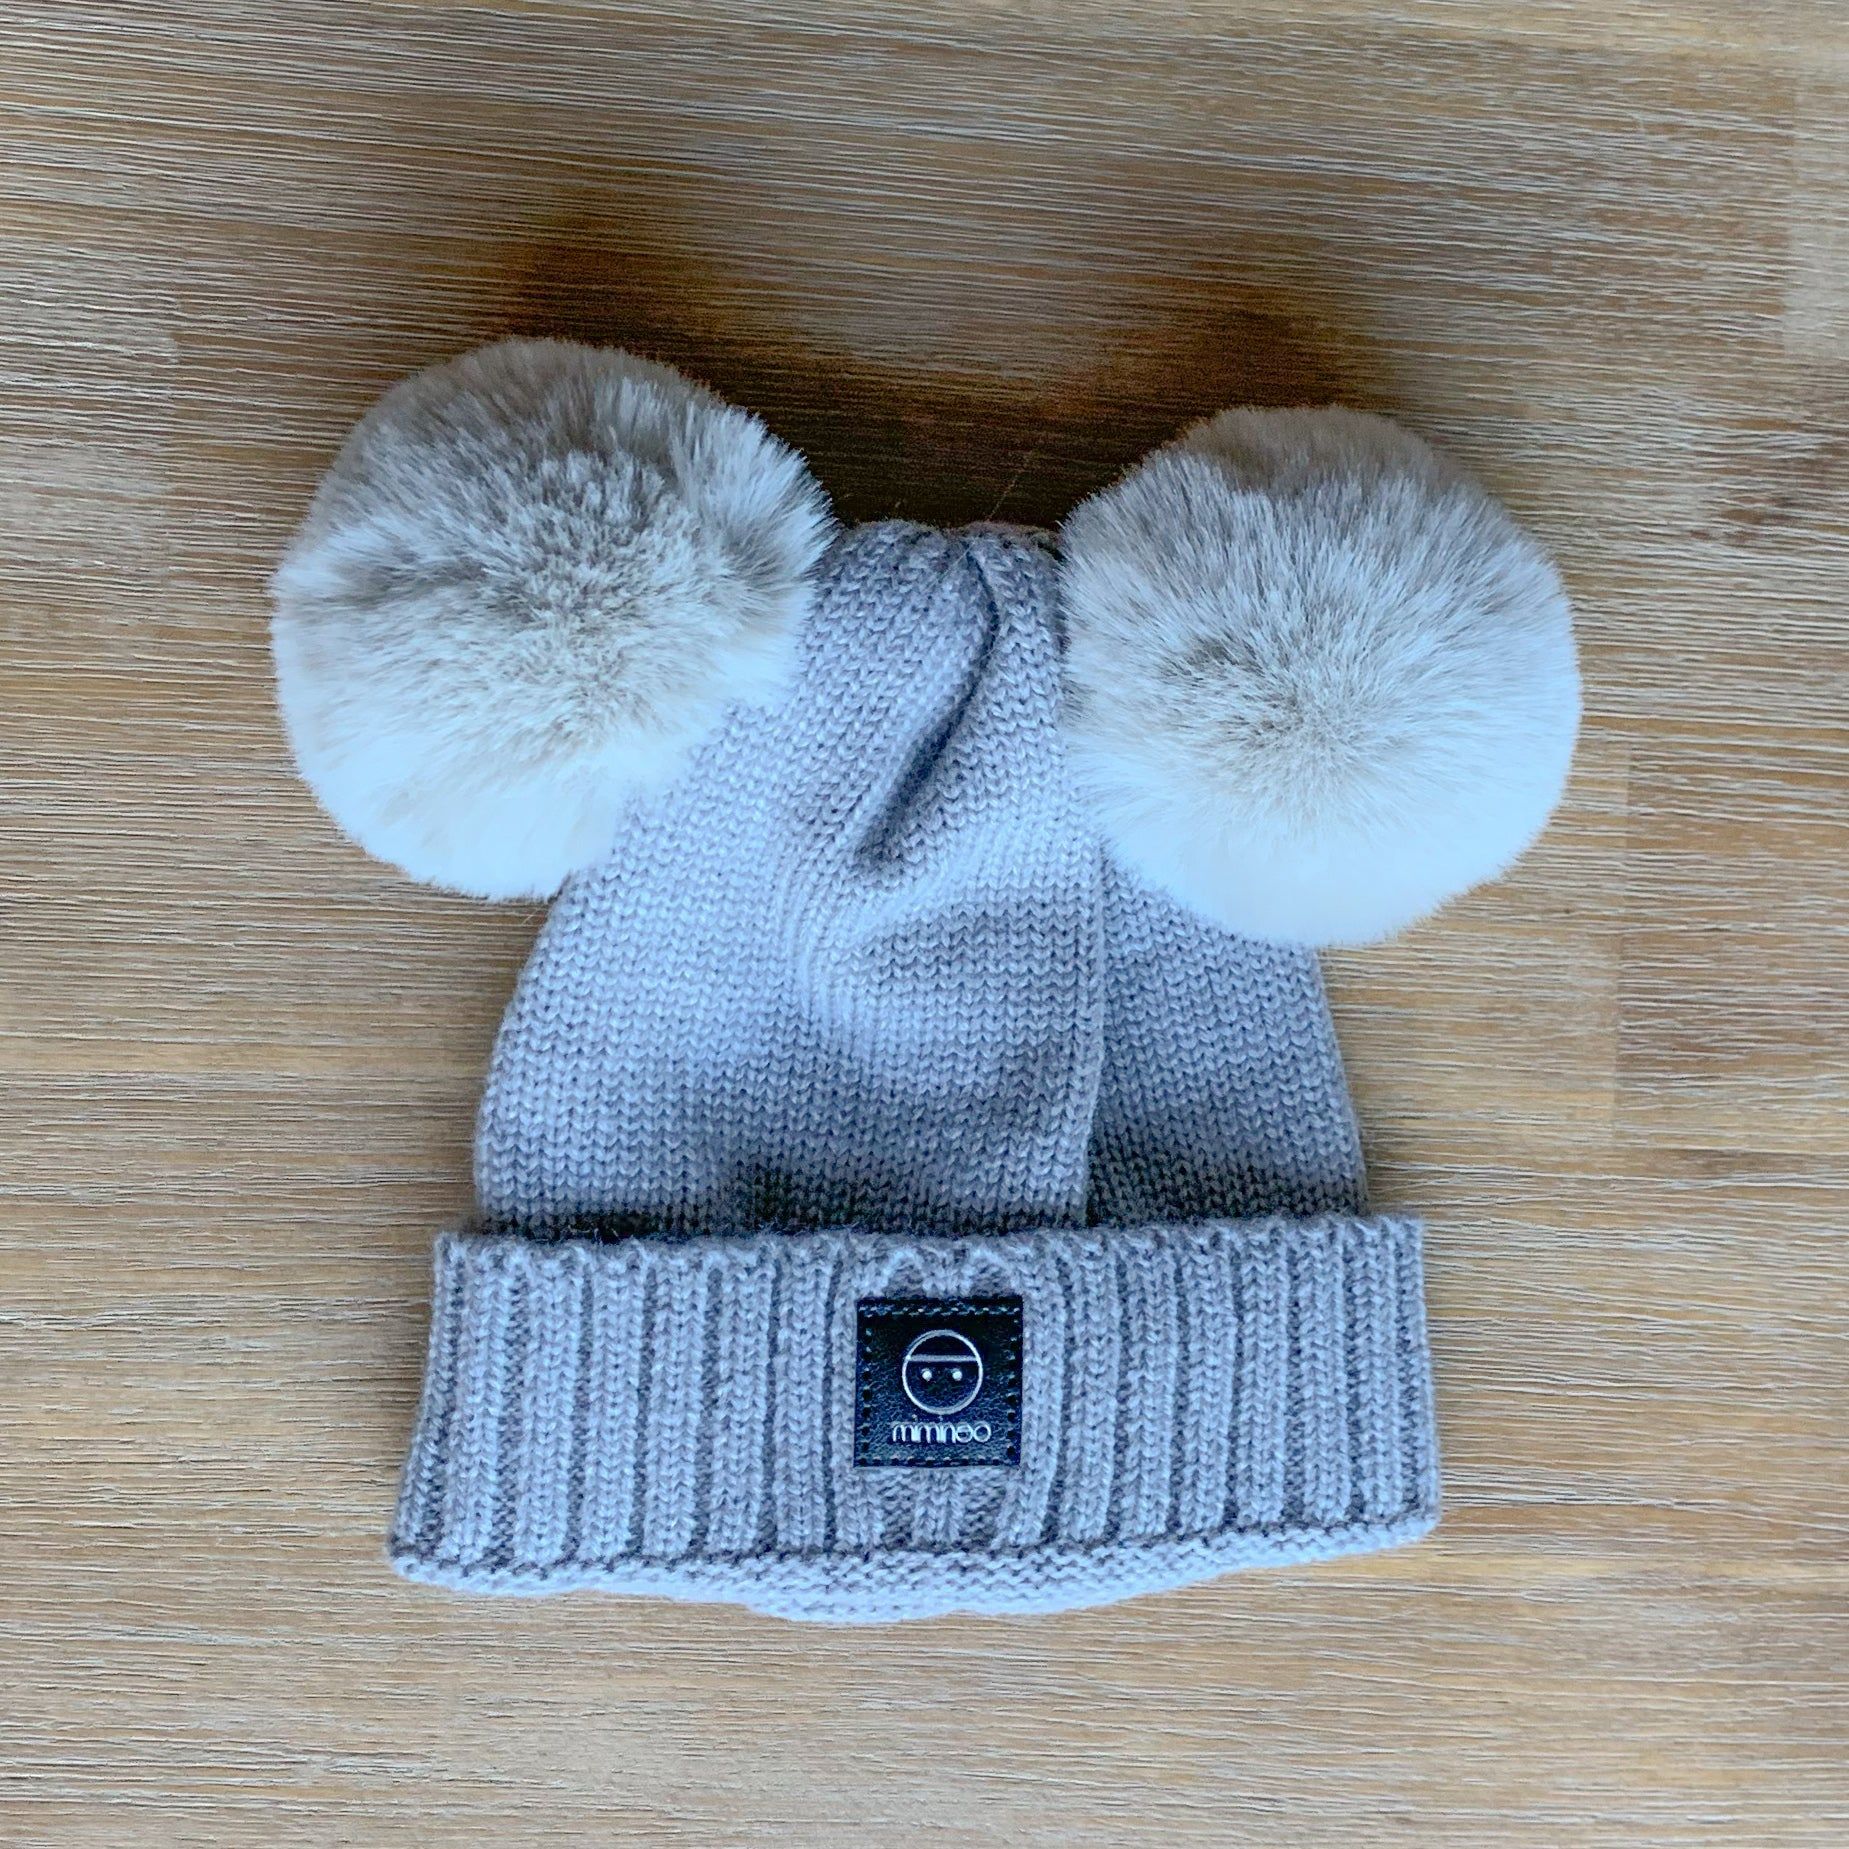 Merino Baby Classic Removable Double Pompoms Hat Grey-Winter Hats-MIMINOO- babies, kids and moms fashion, decor and accessories at Modern Kids Society USA